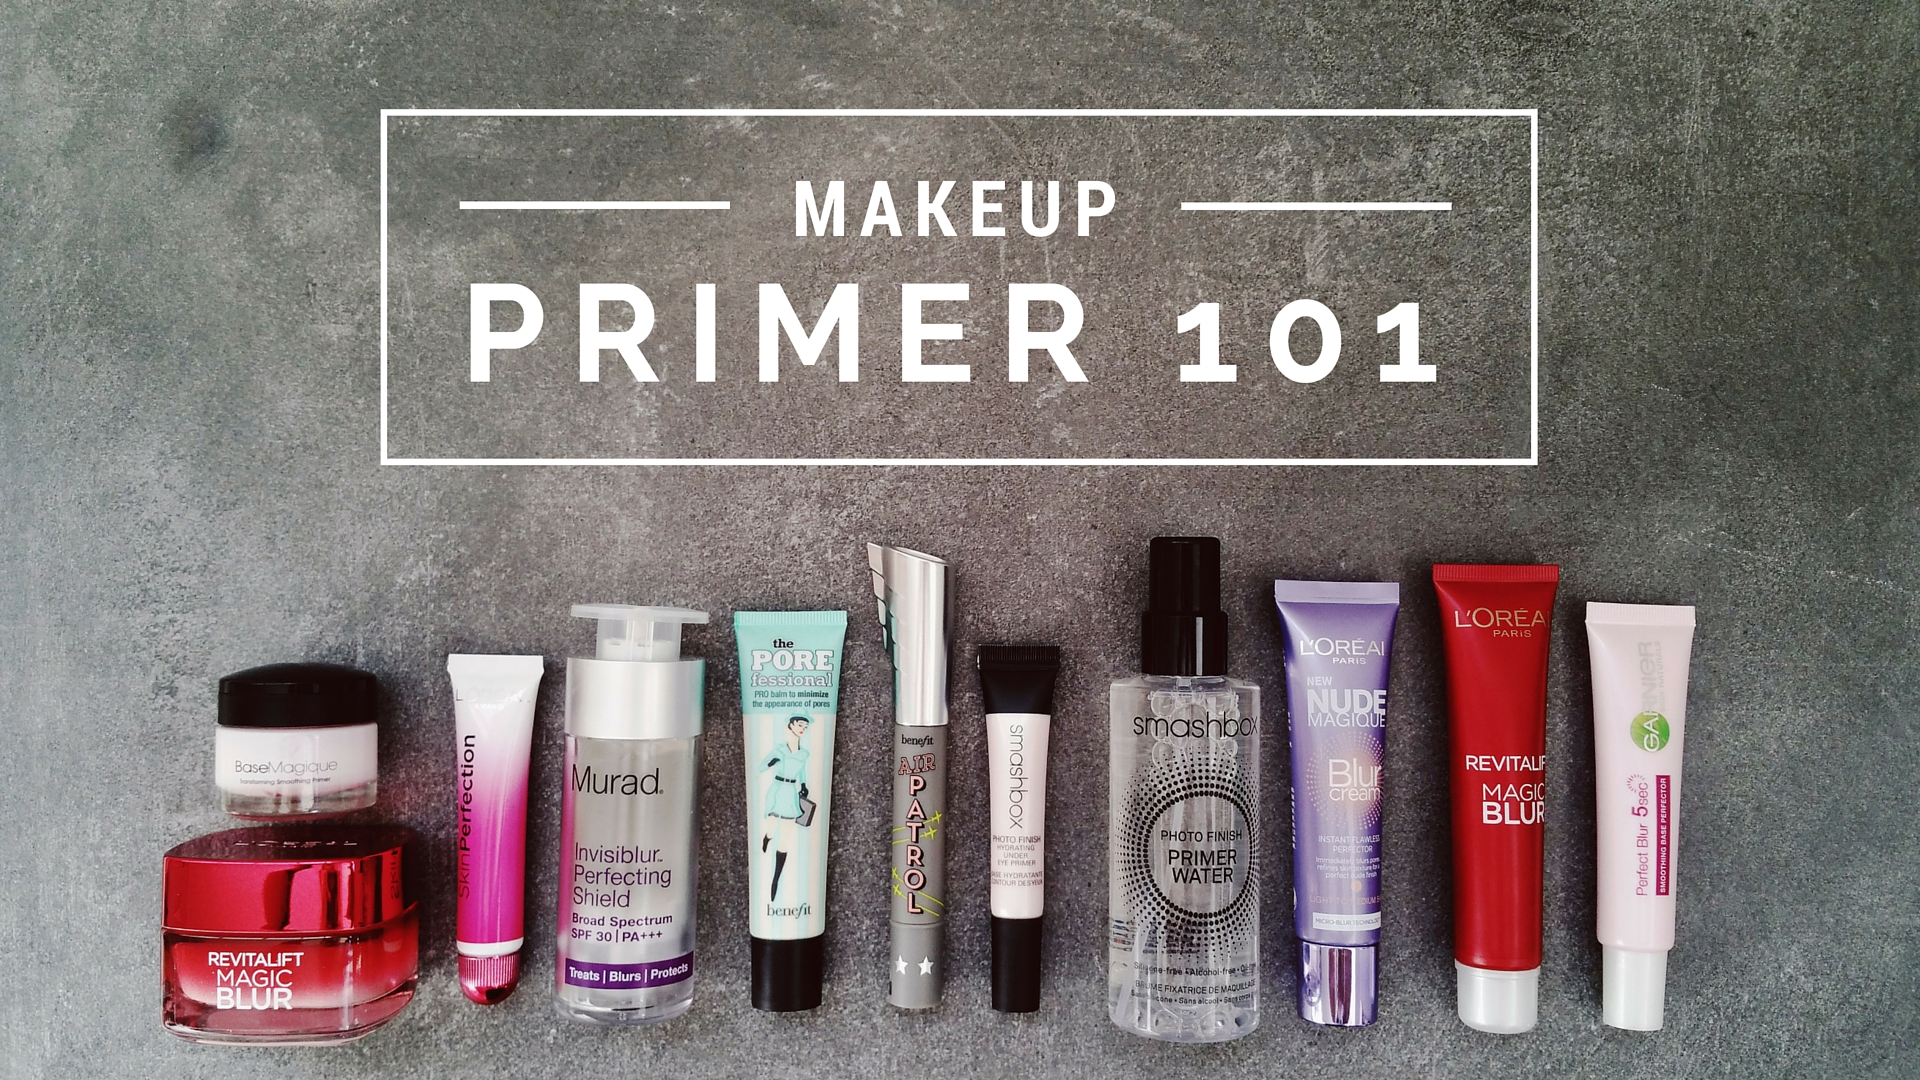 Beauty 101 | Primer & Blur Products